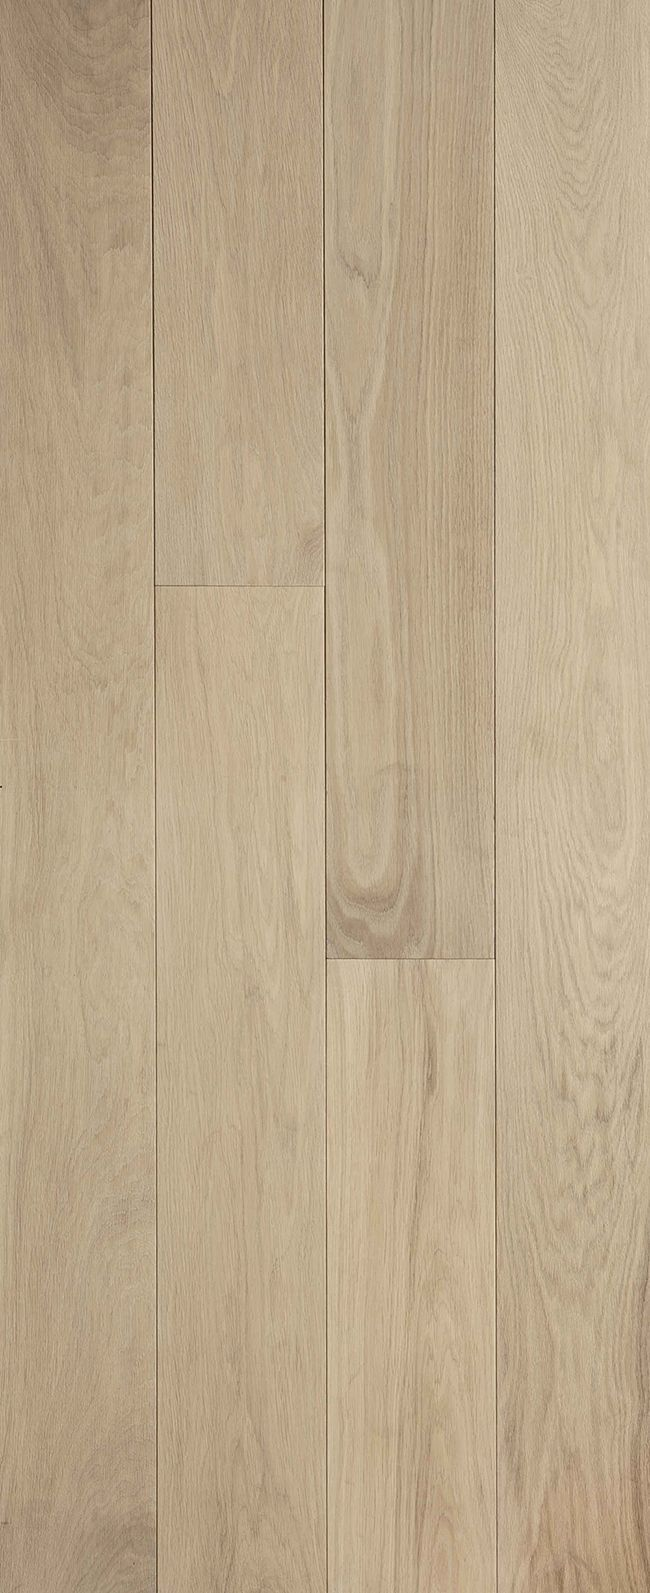 Oak Wood Flooring Texture Oak Wood Texture Wood Floor Texture Wood Texture Seamless